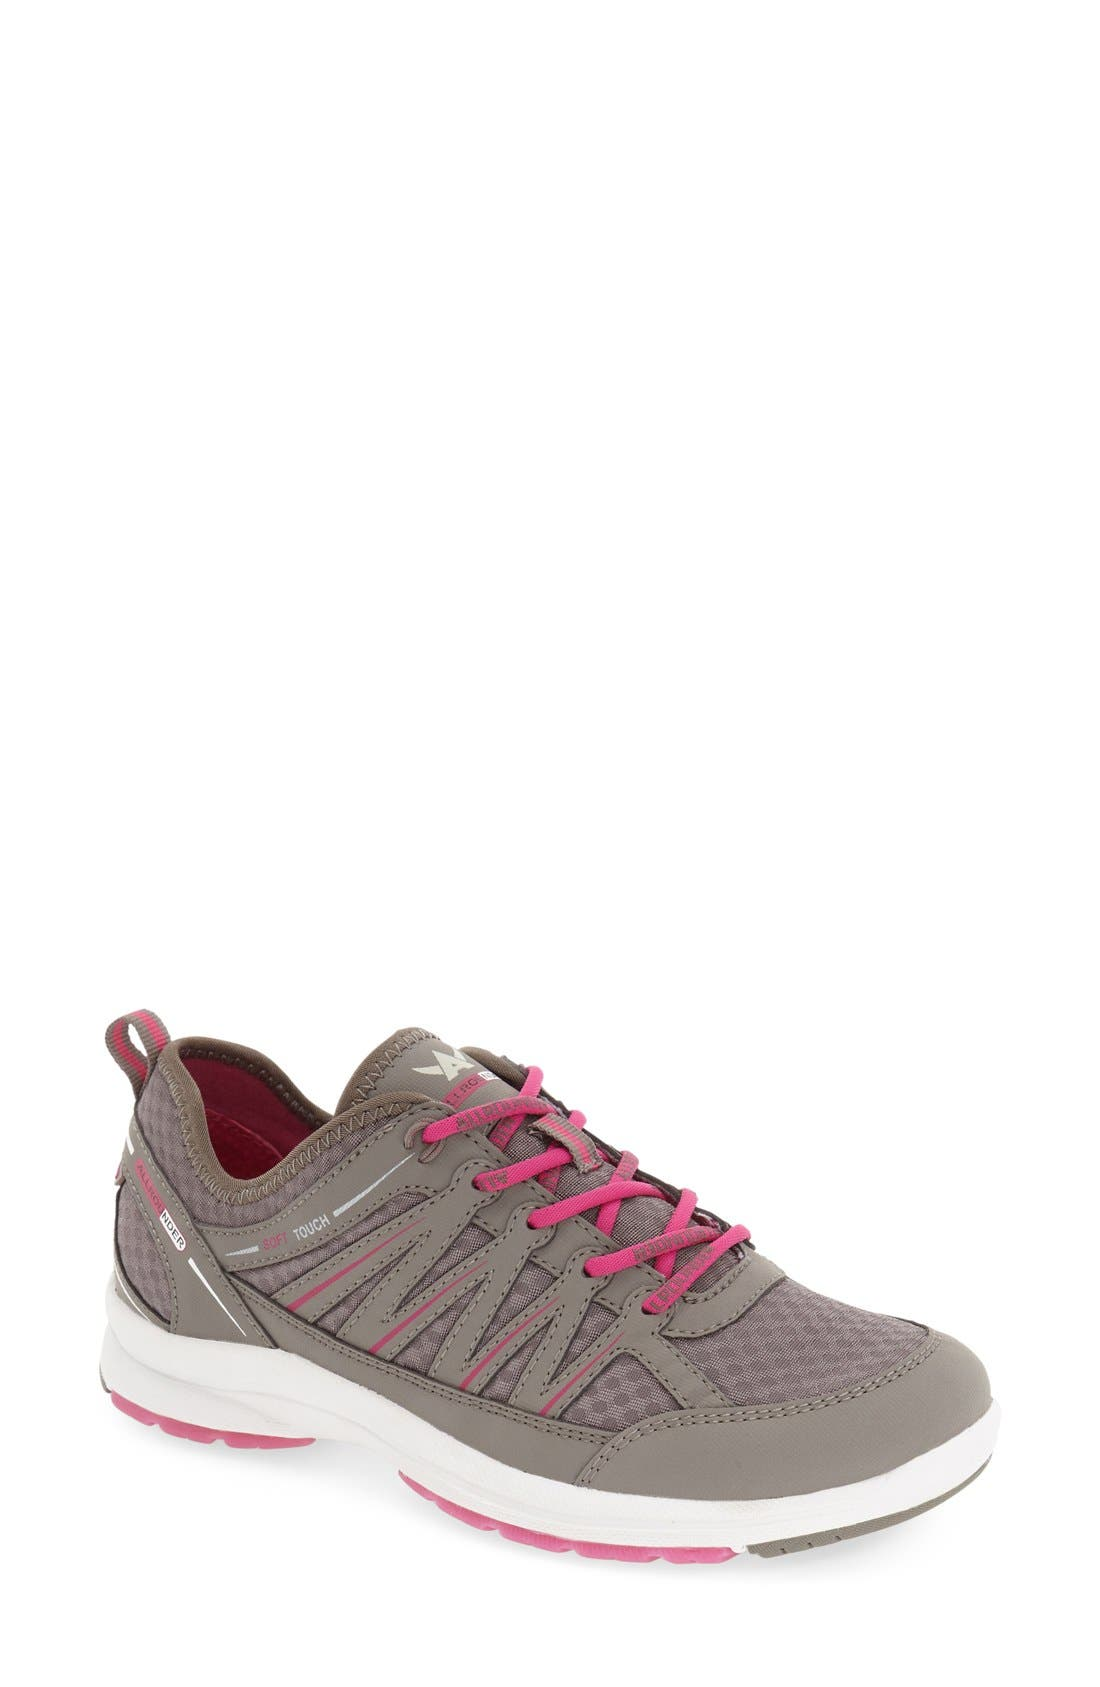 'Darina' Sneaker,                         Main,                         color, 036